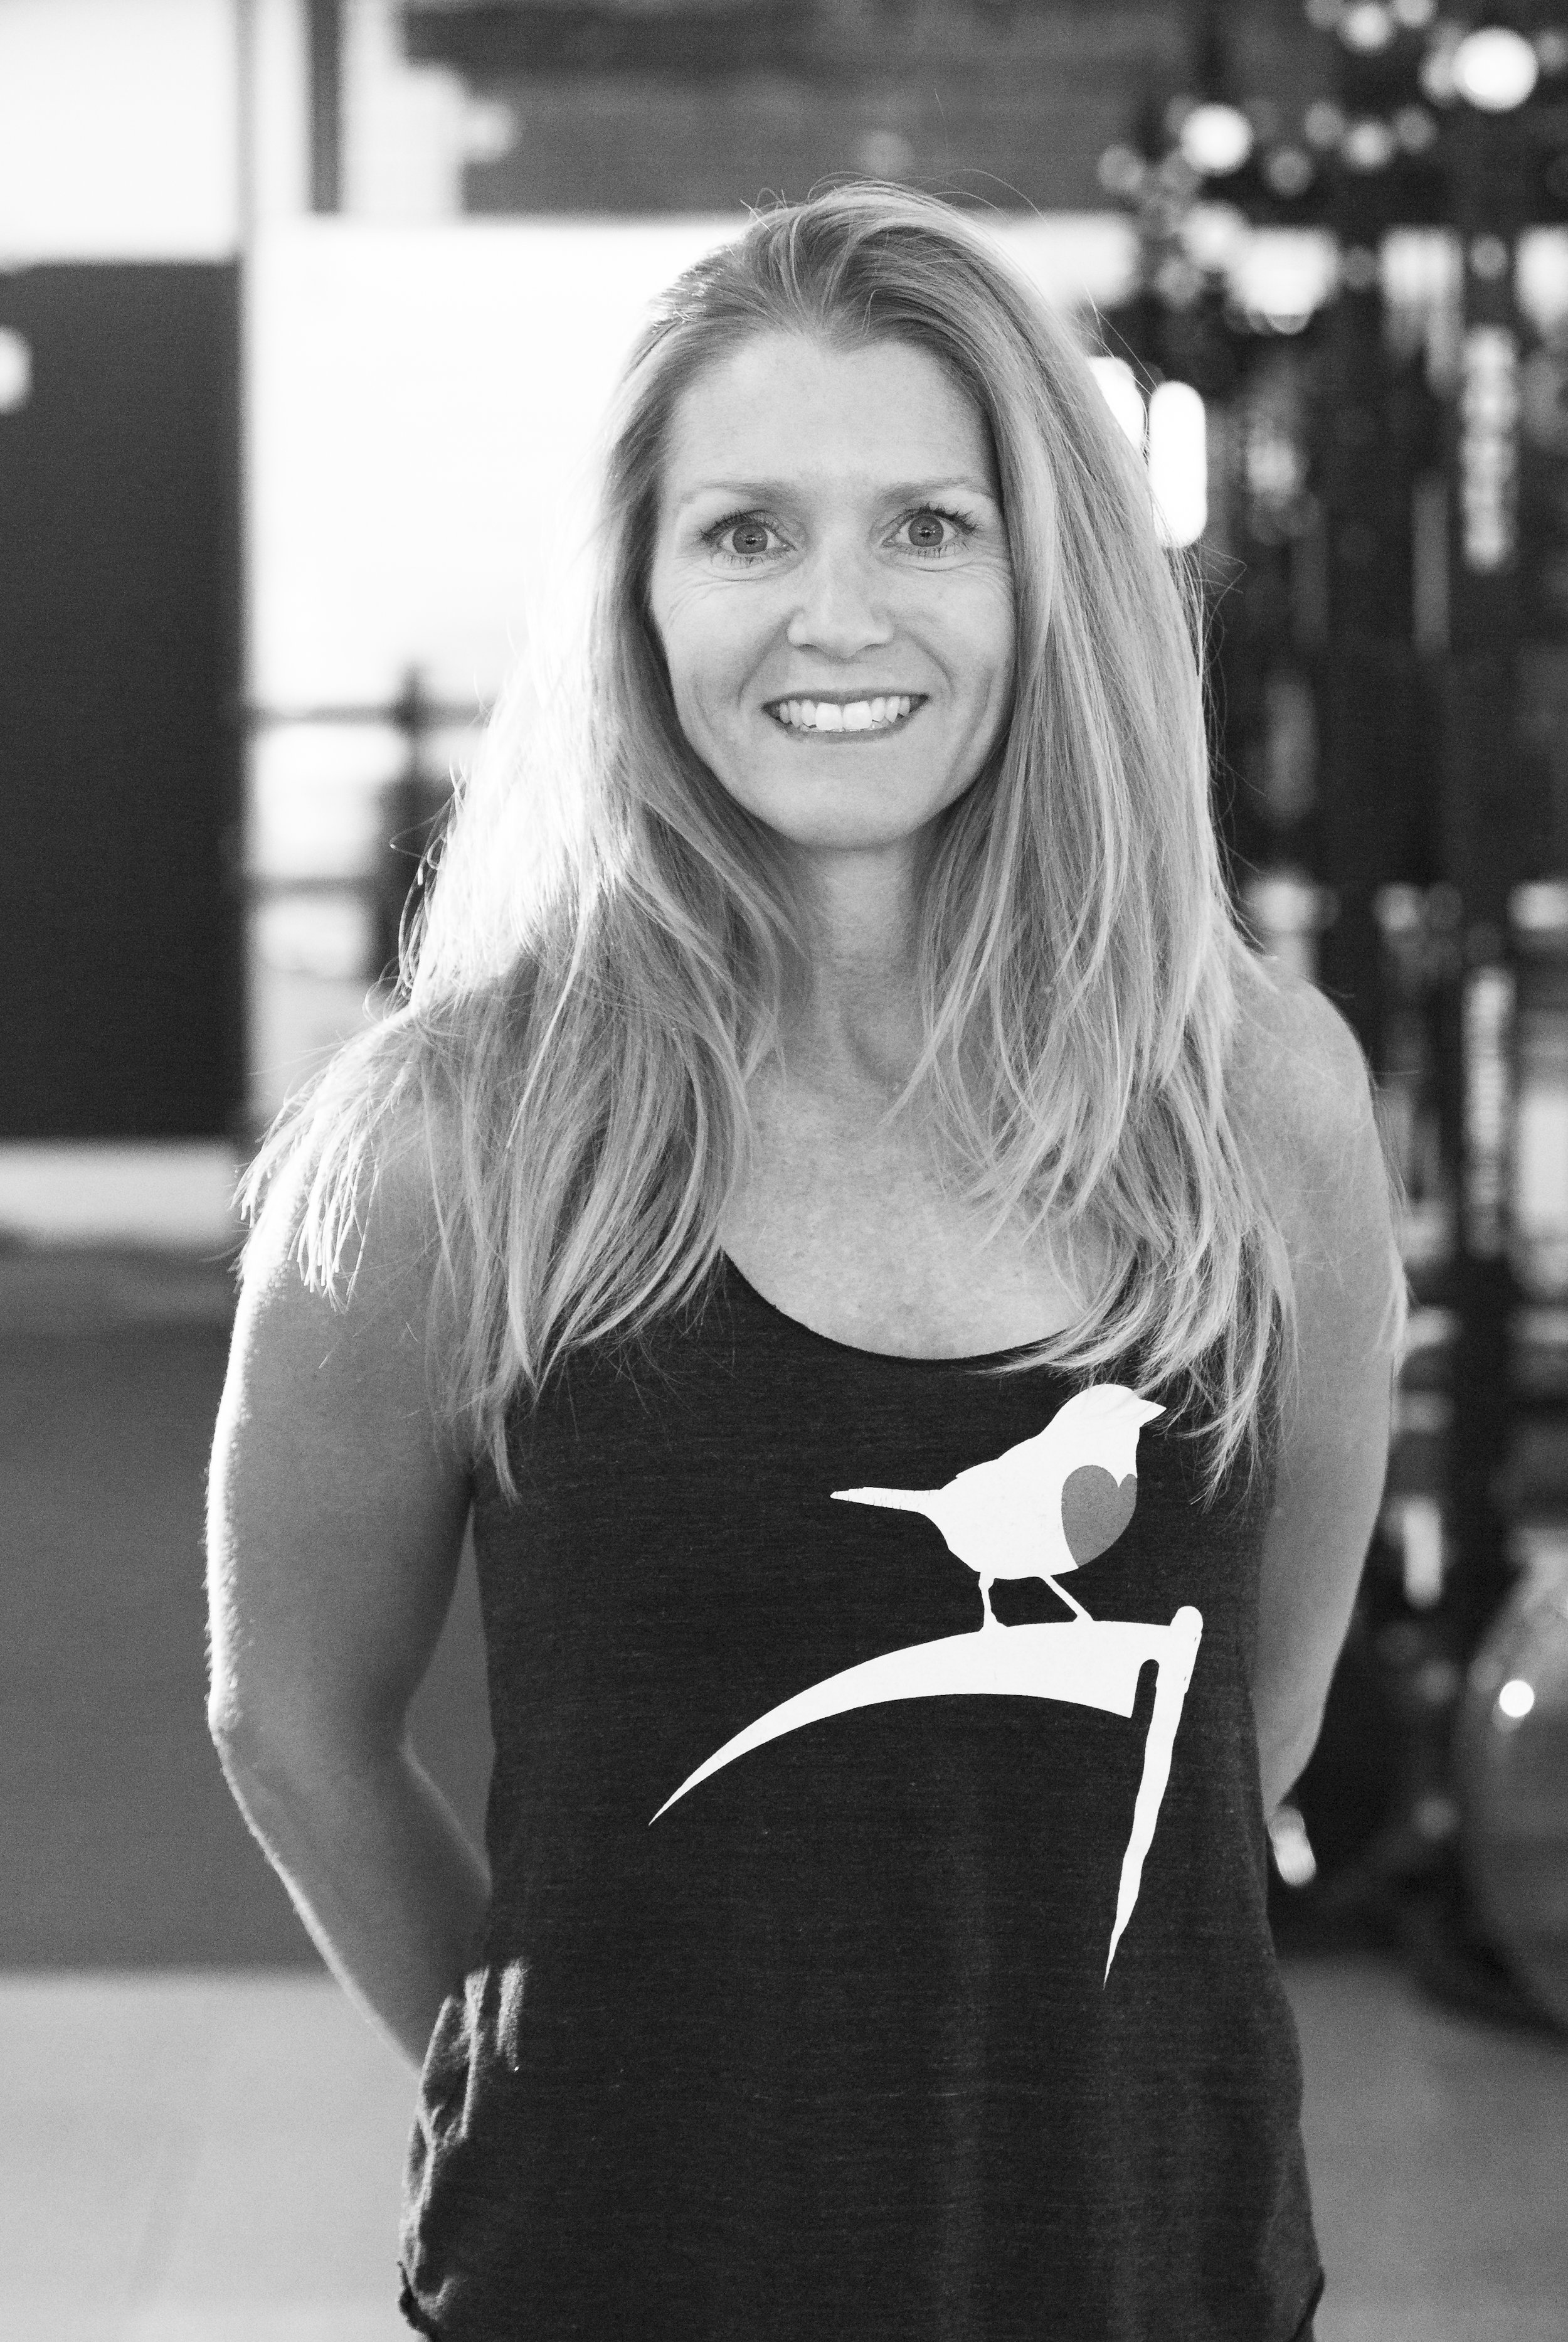 Jan Herrick  - Ski Conditioning - Leaded - Shockwave -  I am passionate about all aspects of fitness, and especially LOVE group exercise. The music, the camaraderie, the pure fun - of people coming together to be stronger - puts a smile on my face. I began leading fitness classes when I moved to Telluride in the early 90s, and feel gym workouts are a great compliment to the many outdoor adventures we embrace as mountain people. My teaching style is inclusive and challenging, where modifications are always offered. The highlight of my day is walking into Fuel, where our team leader Becca has brought together an awesome group of talented, compassionate professionals who I feel honored to work with.